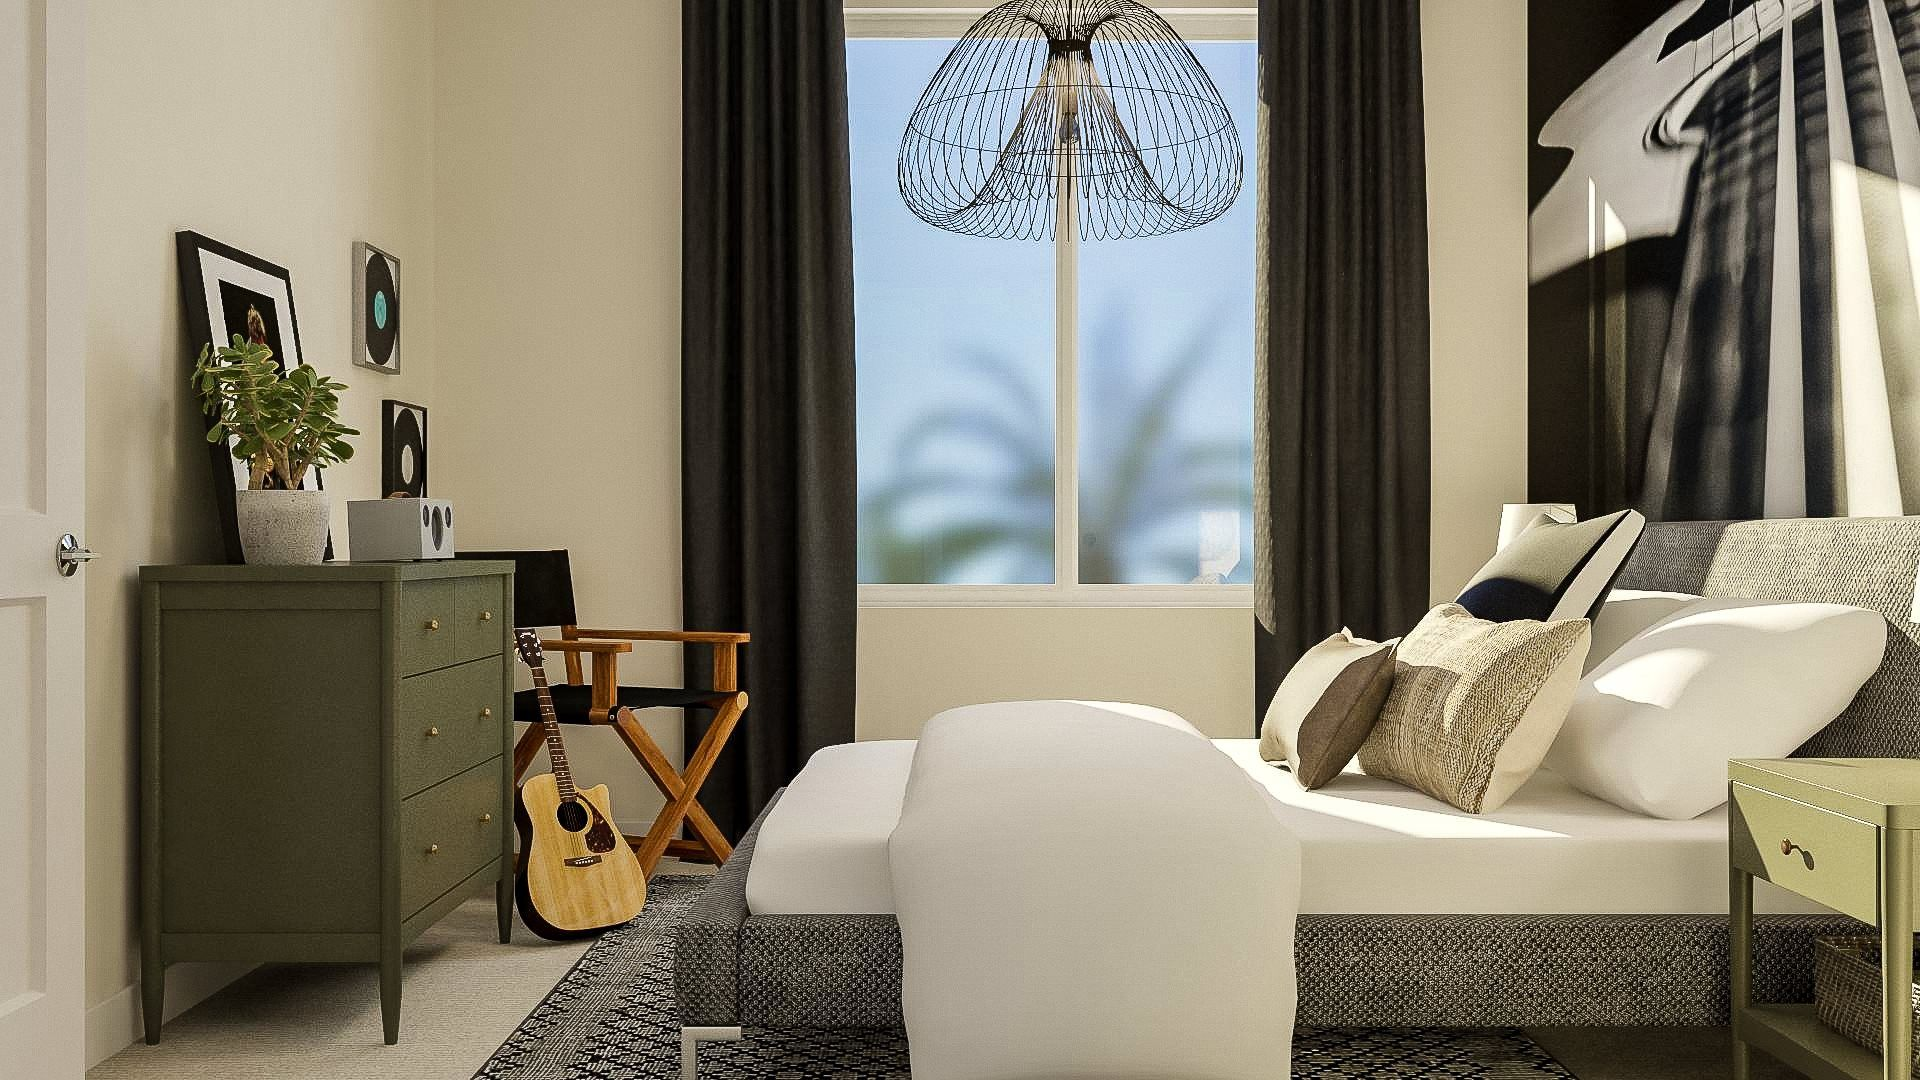 Bedroom featured in the Alia 4 By Lennar in Orange County, CA